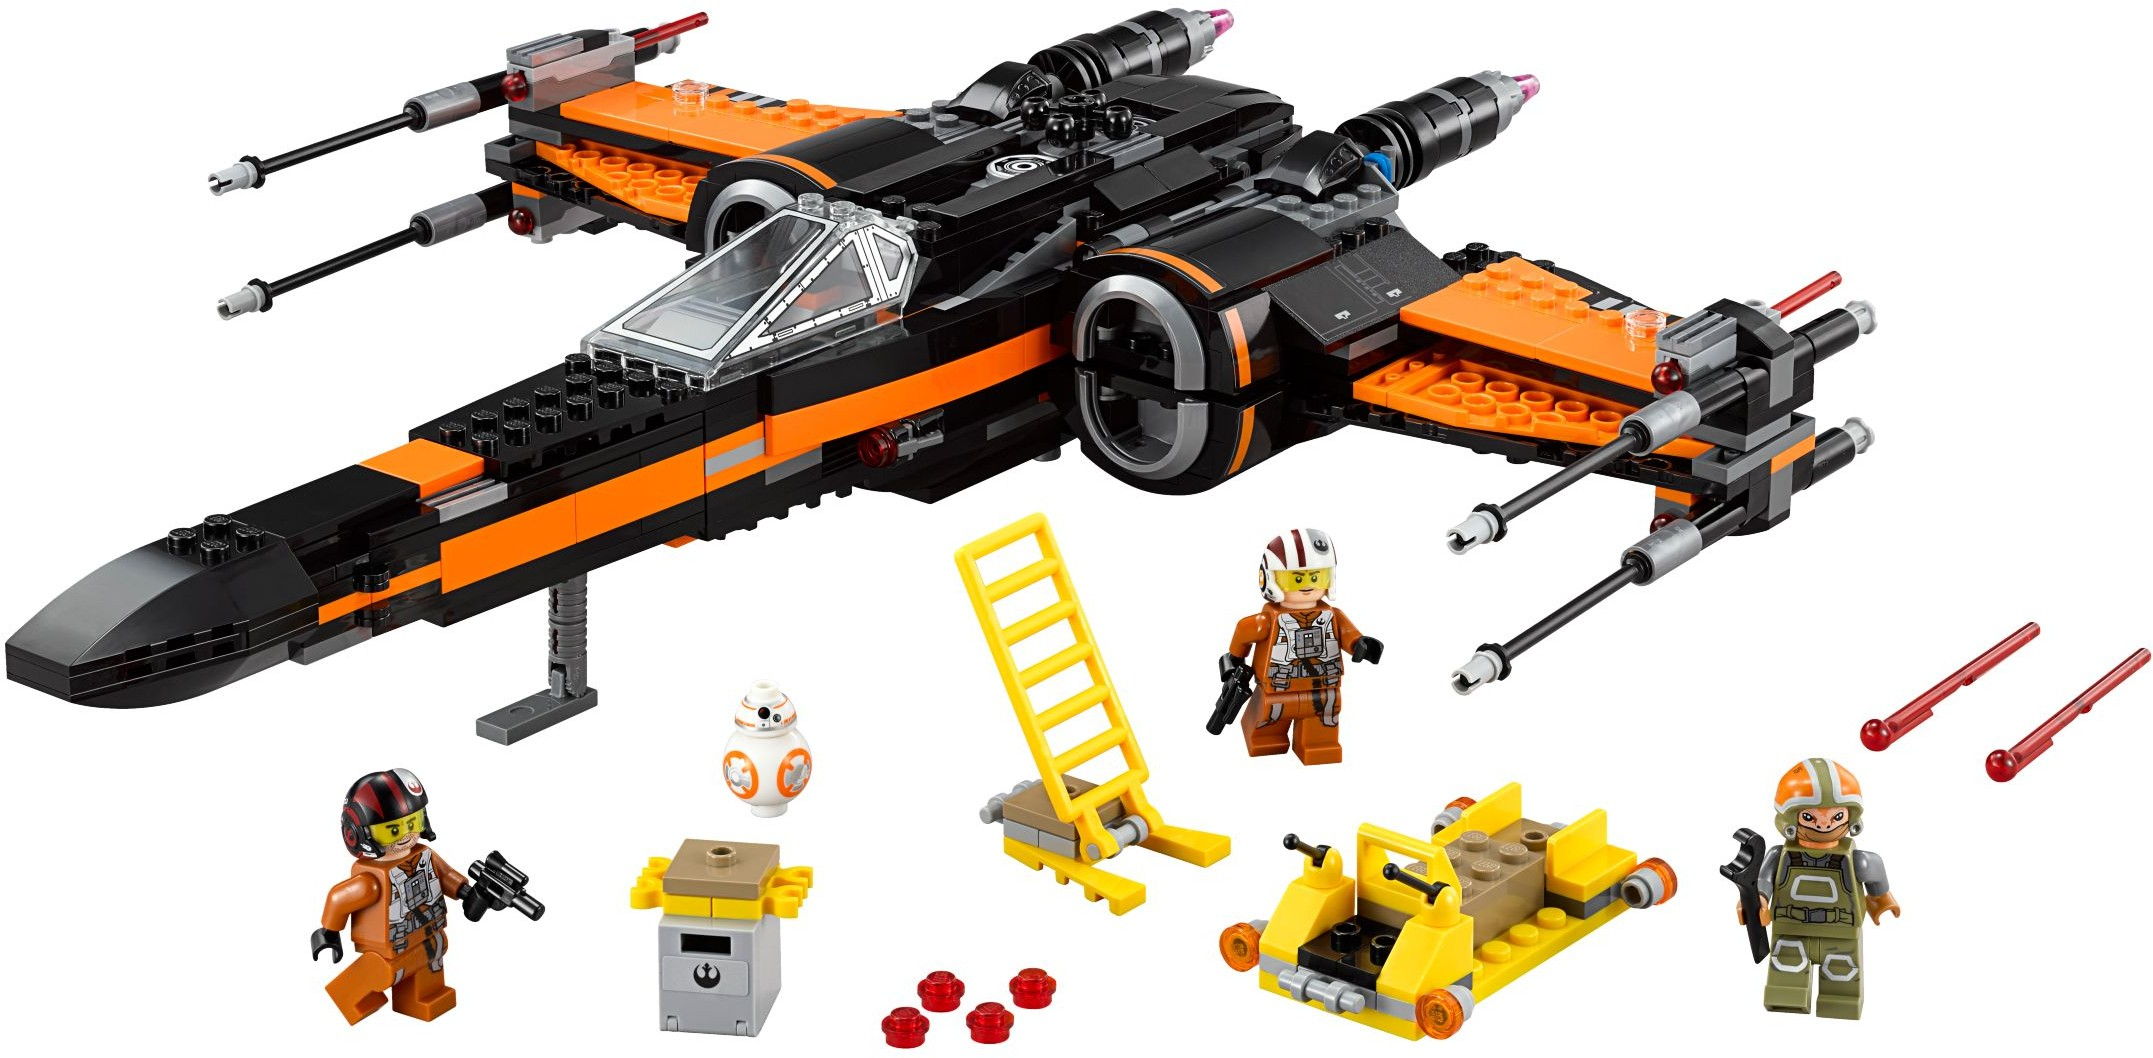 LEGO Star Wars Poe's X-Wing Fighter (75102) - $79.99